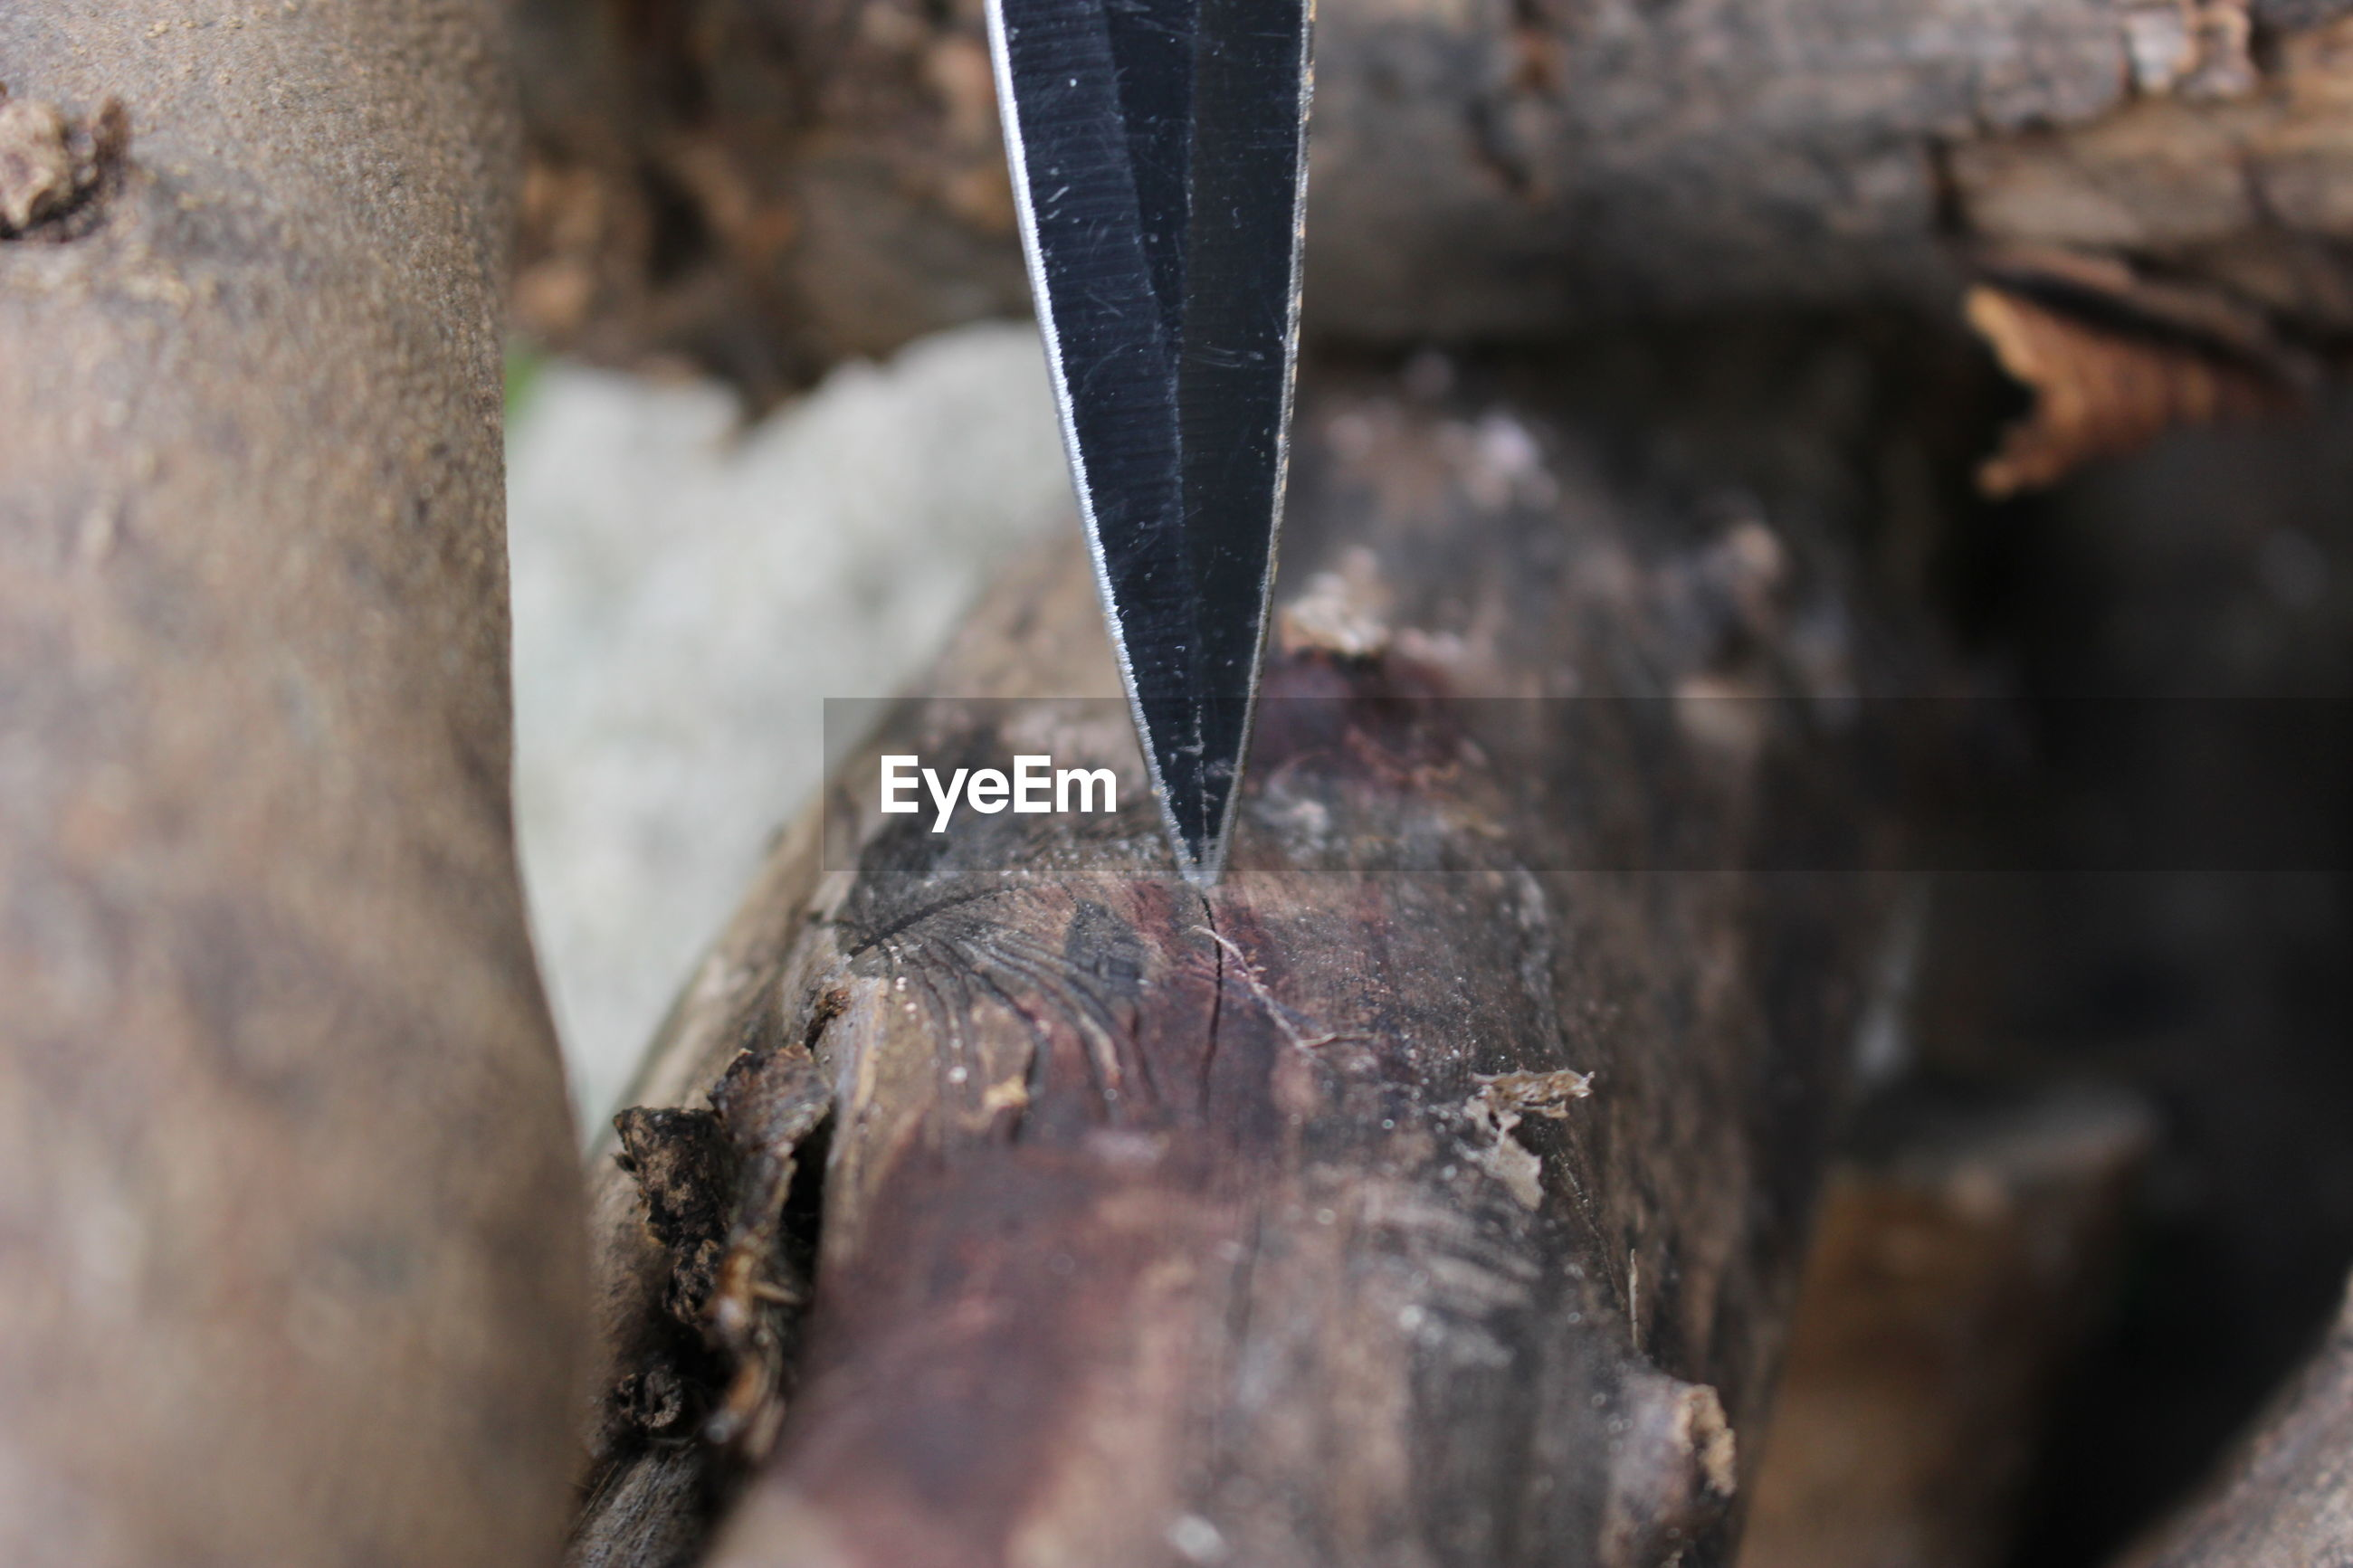 Close-up of knife stuck in wood